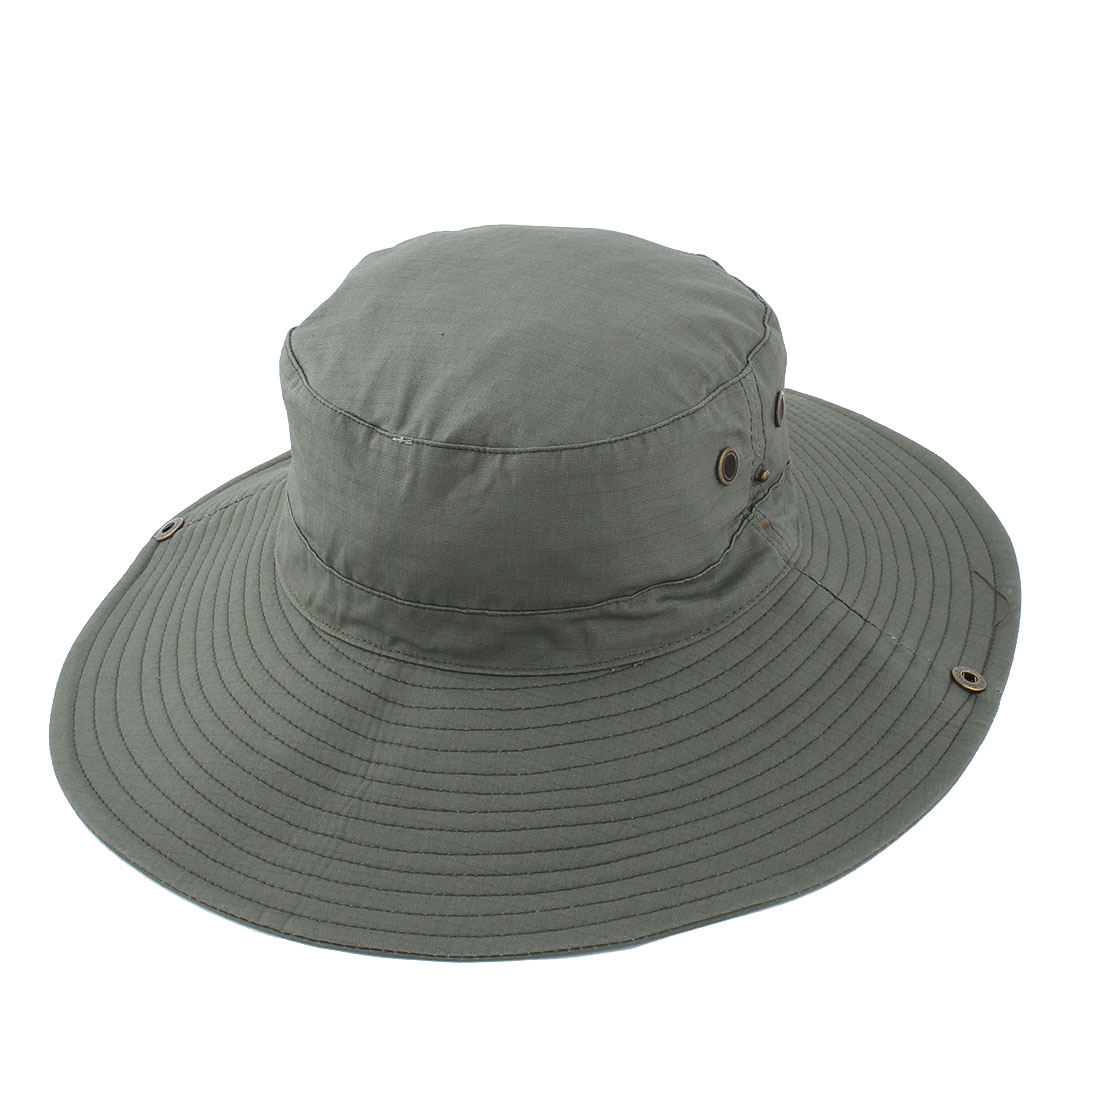 Fisherman Outdoor Sports Mountaineering Hunting Adjustable Strap Wide Brim Protective Bucket Summer Cap Fishing Hat Army Green